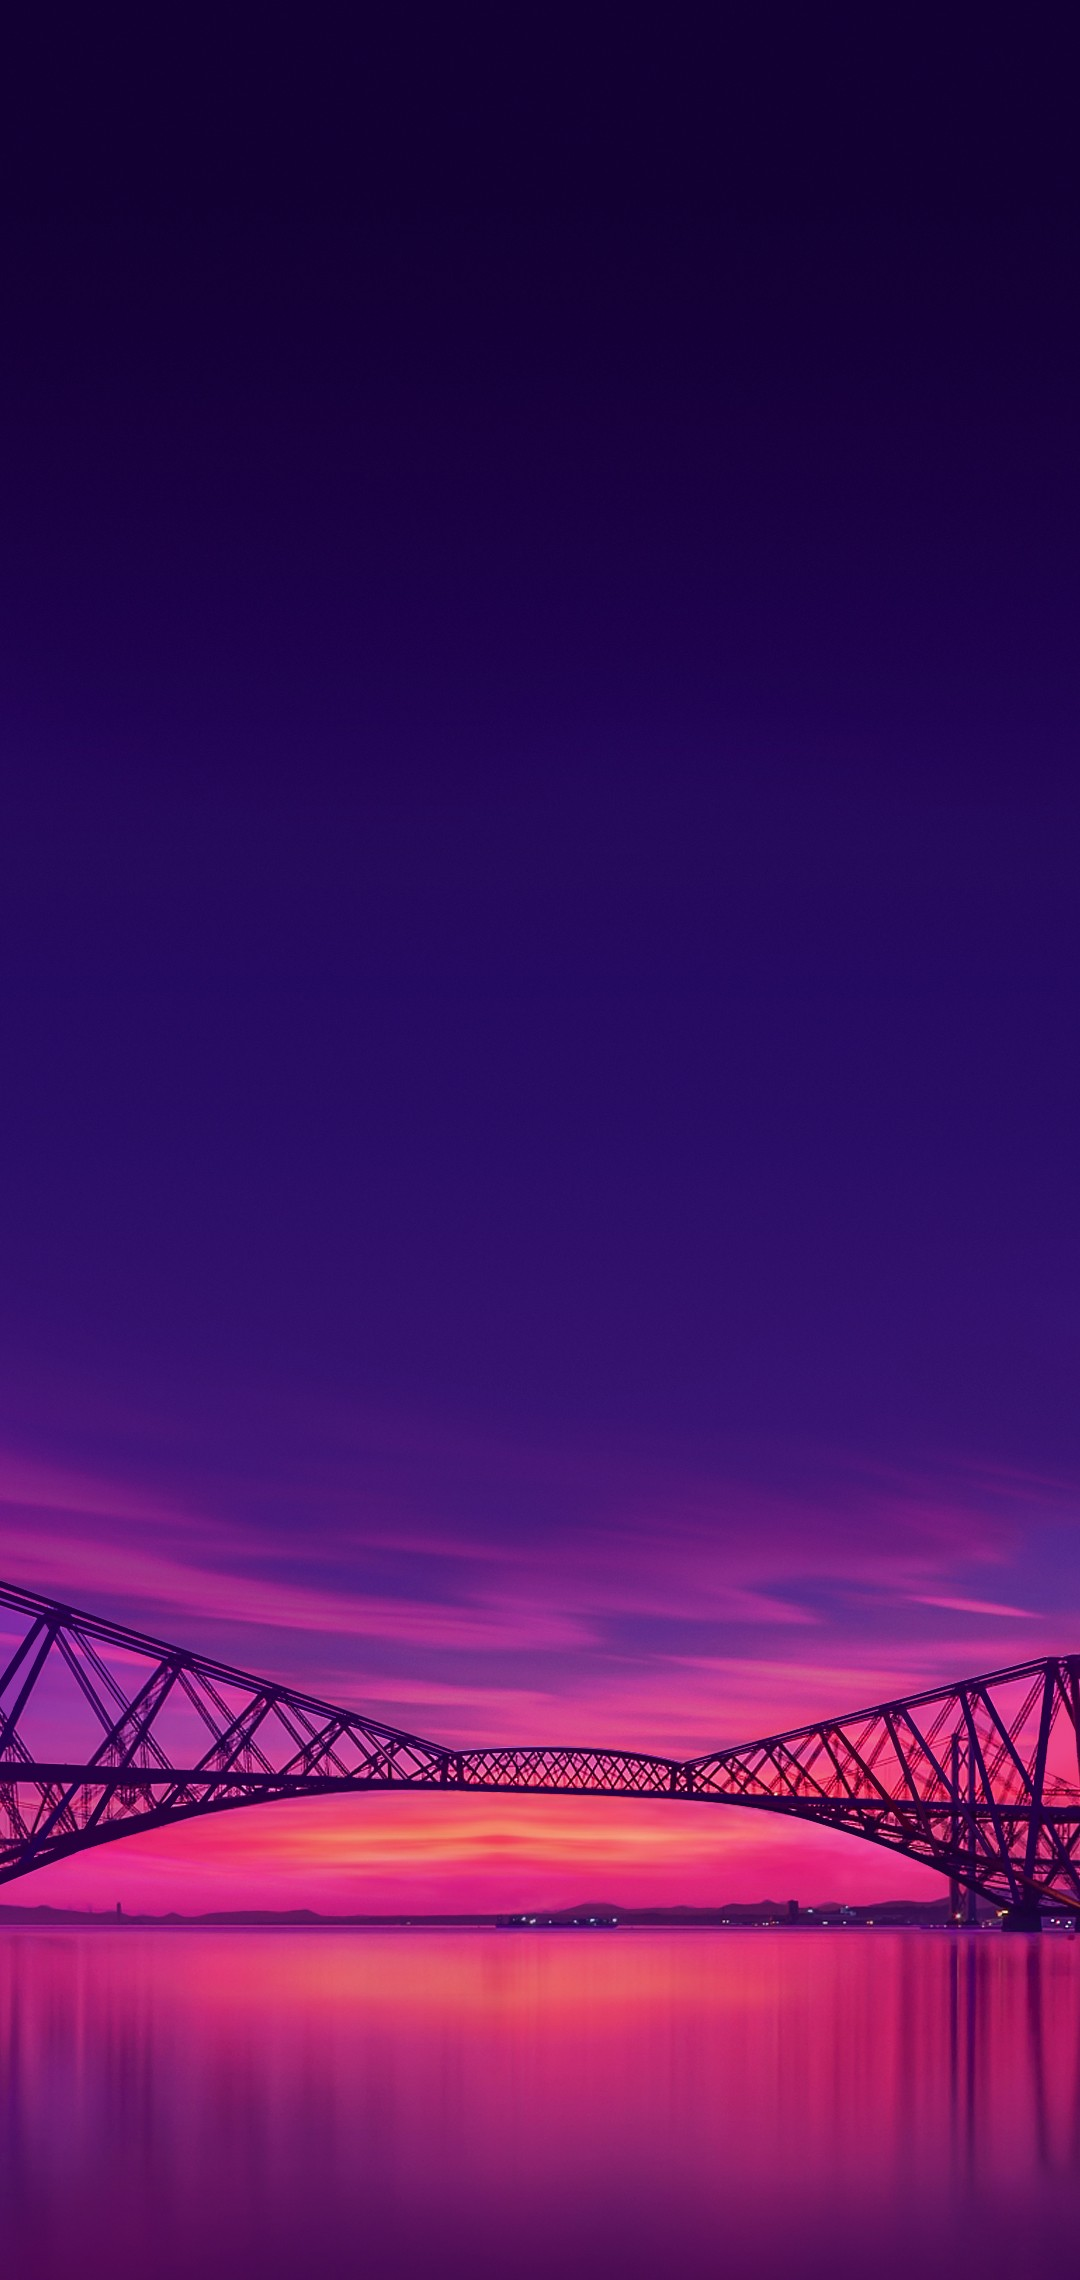 Oppo R15 Stock Wallpaper 1 [1080x2280]